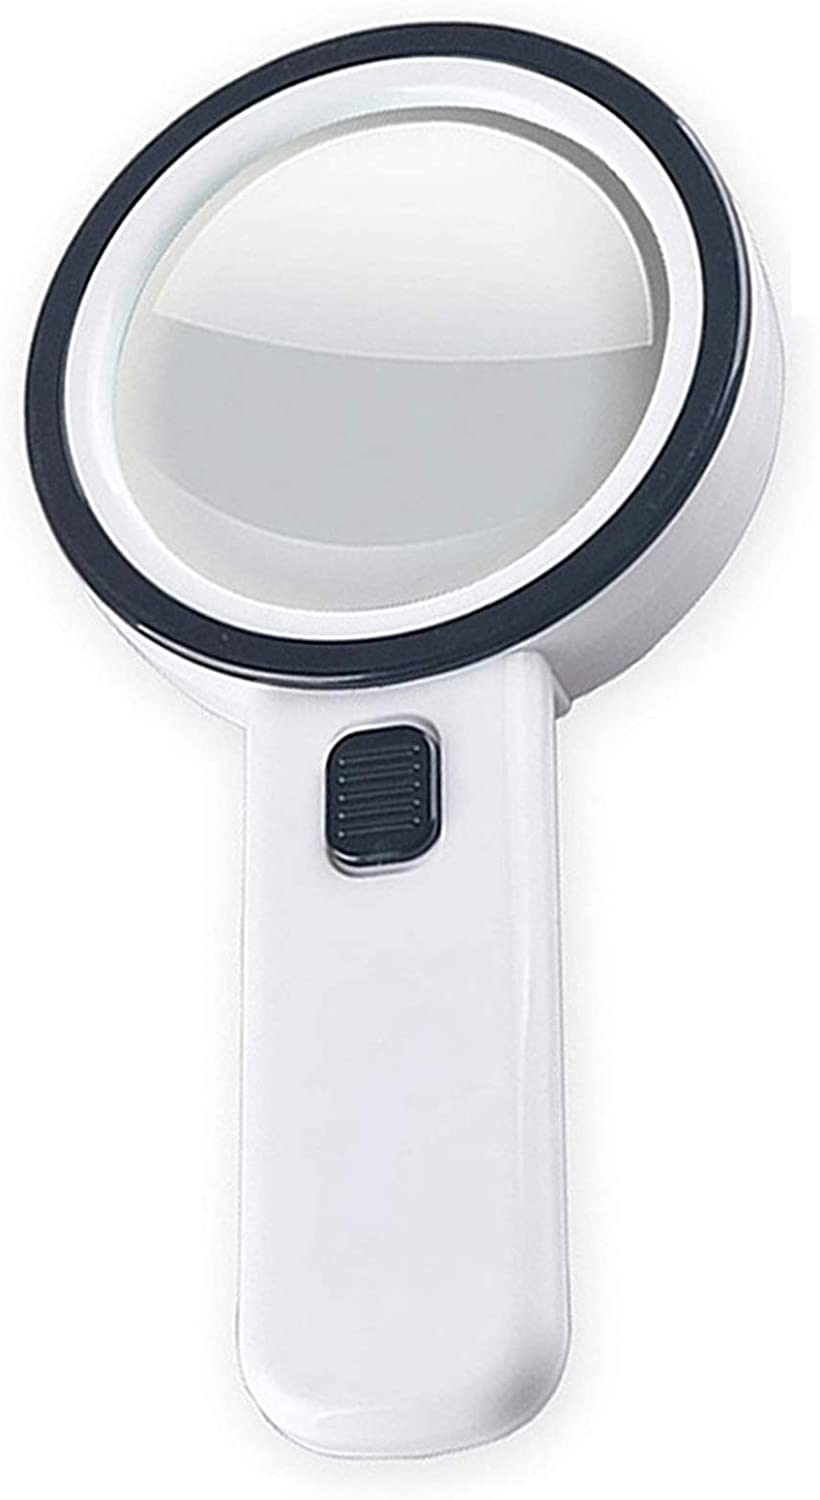 30X Handheld Magnifying Glass with Light, Jumbo Double Lens 12 LED Illuminated Magnifier for Seniors Reading, Coins, Exploring, Stamps, Map, Inspection, Jewelry, Macular Degeneration, Hobbies